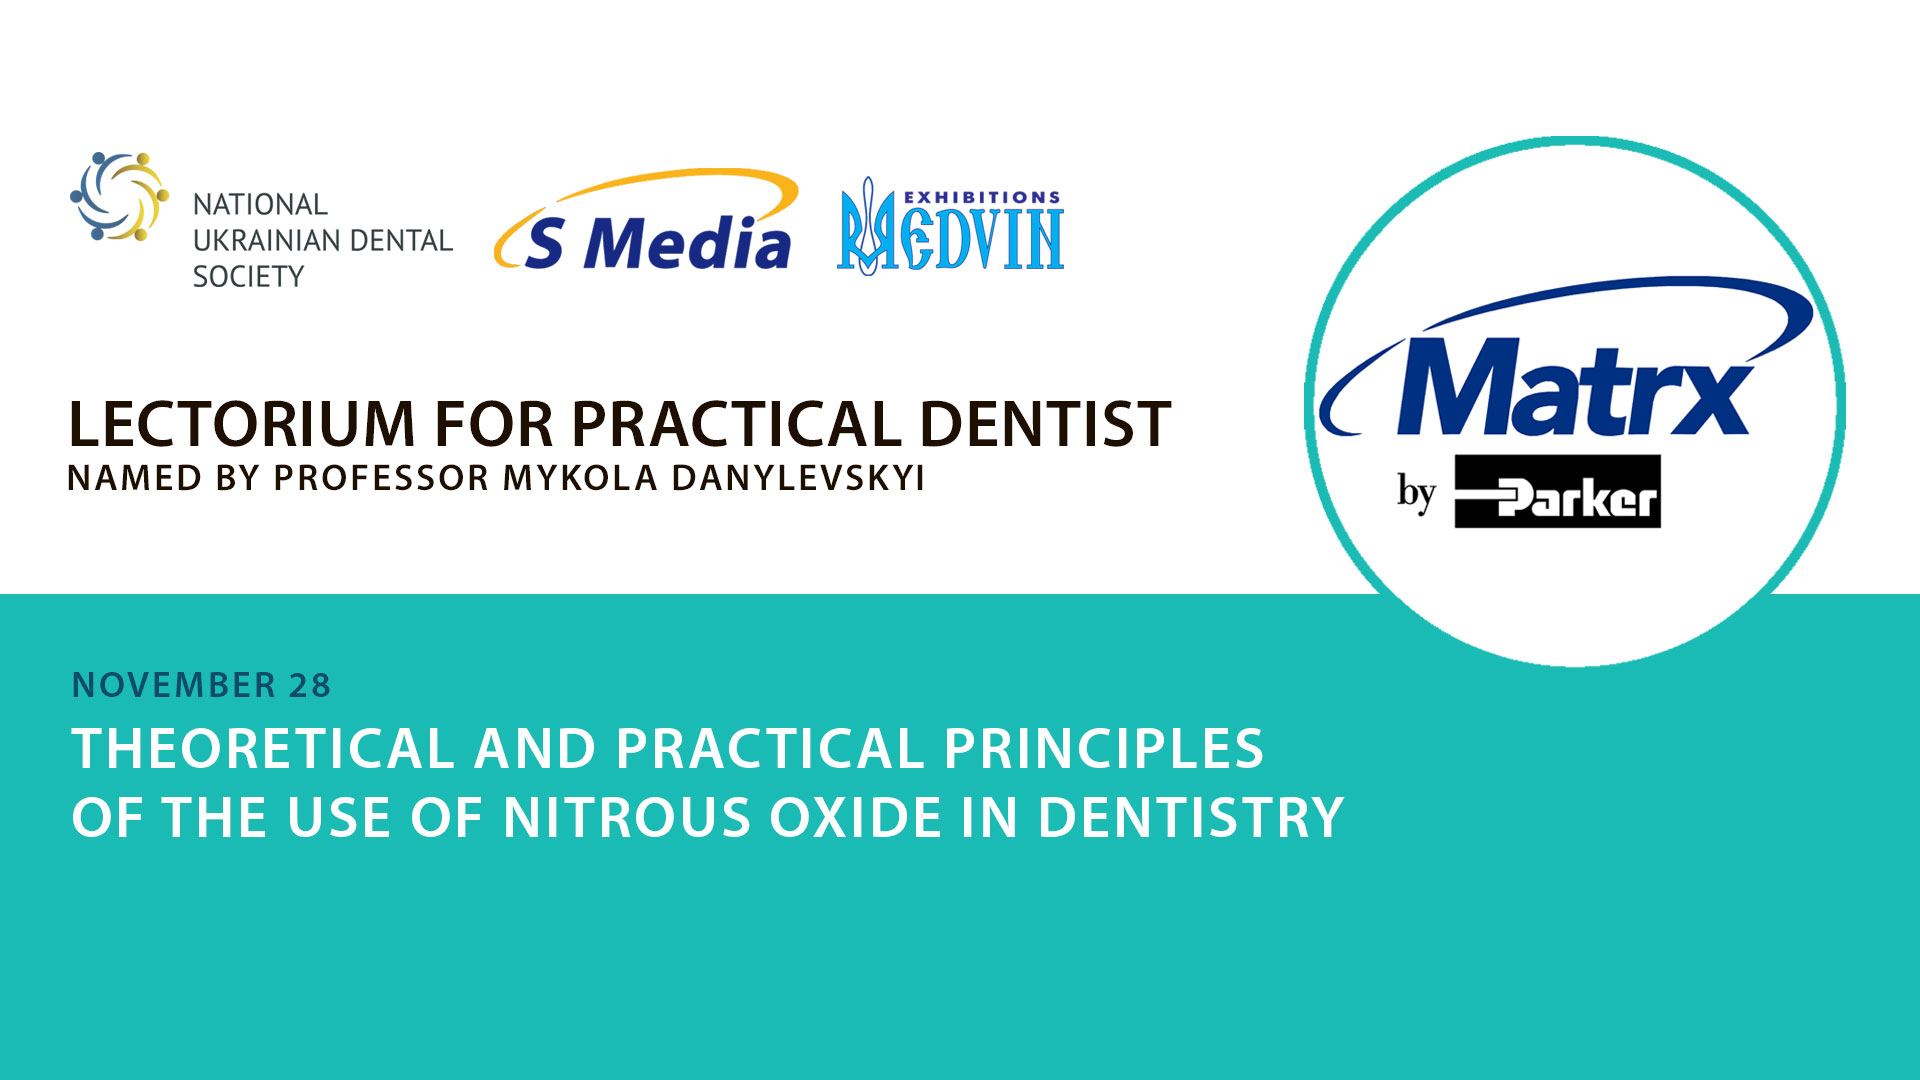 Theoretical and practical principles of the use of nitrous oxide in dentistry - 28.11.19